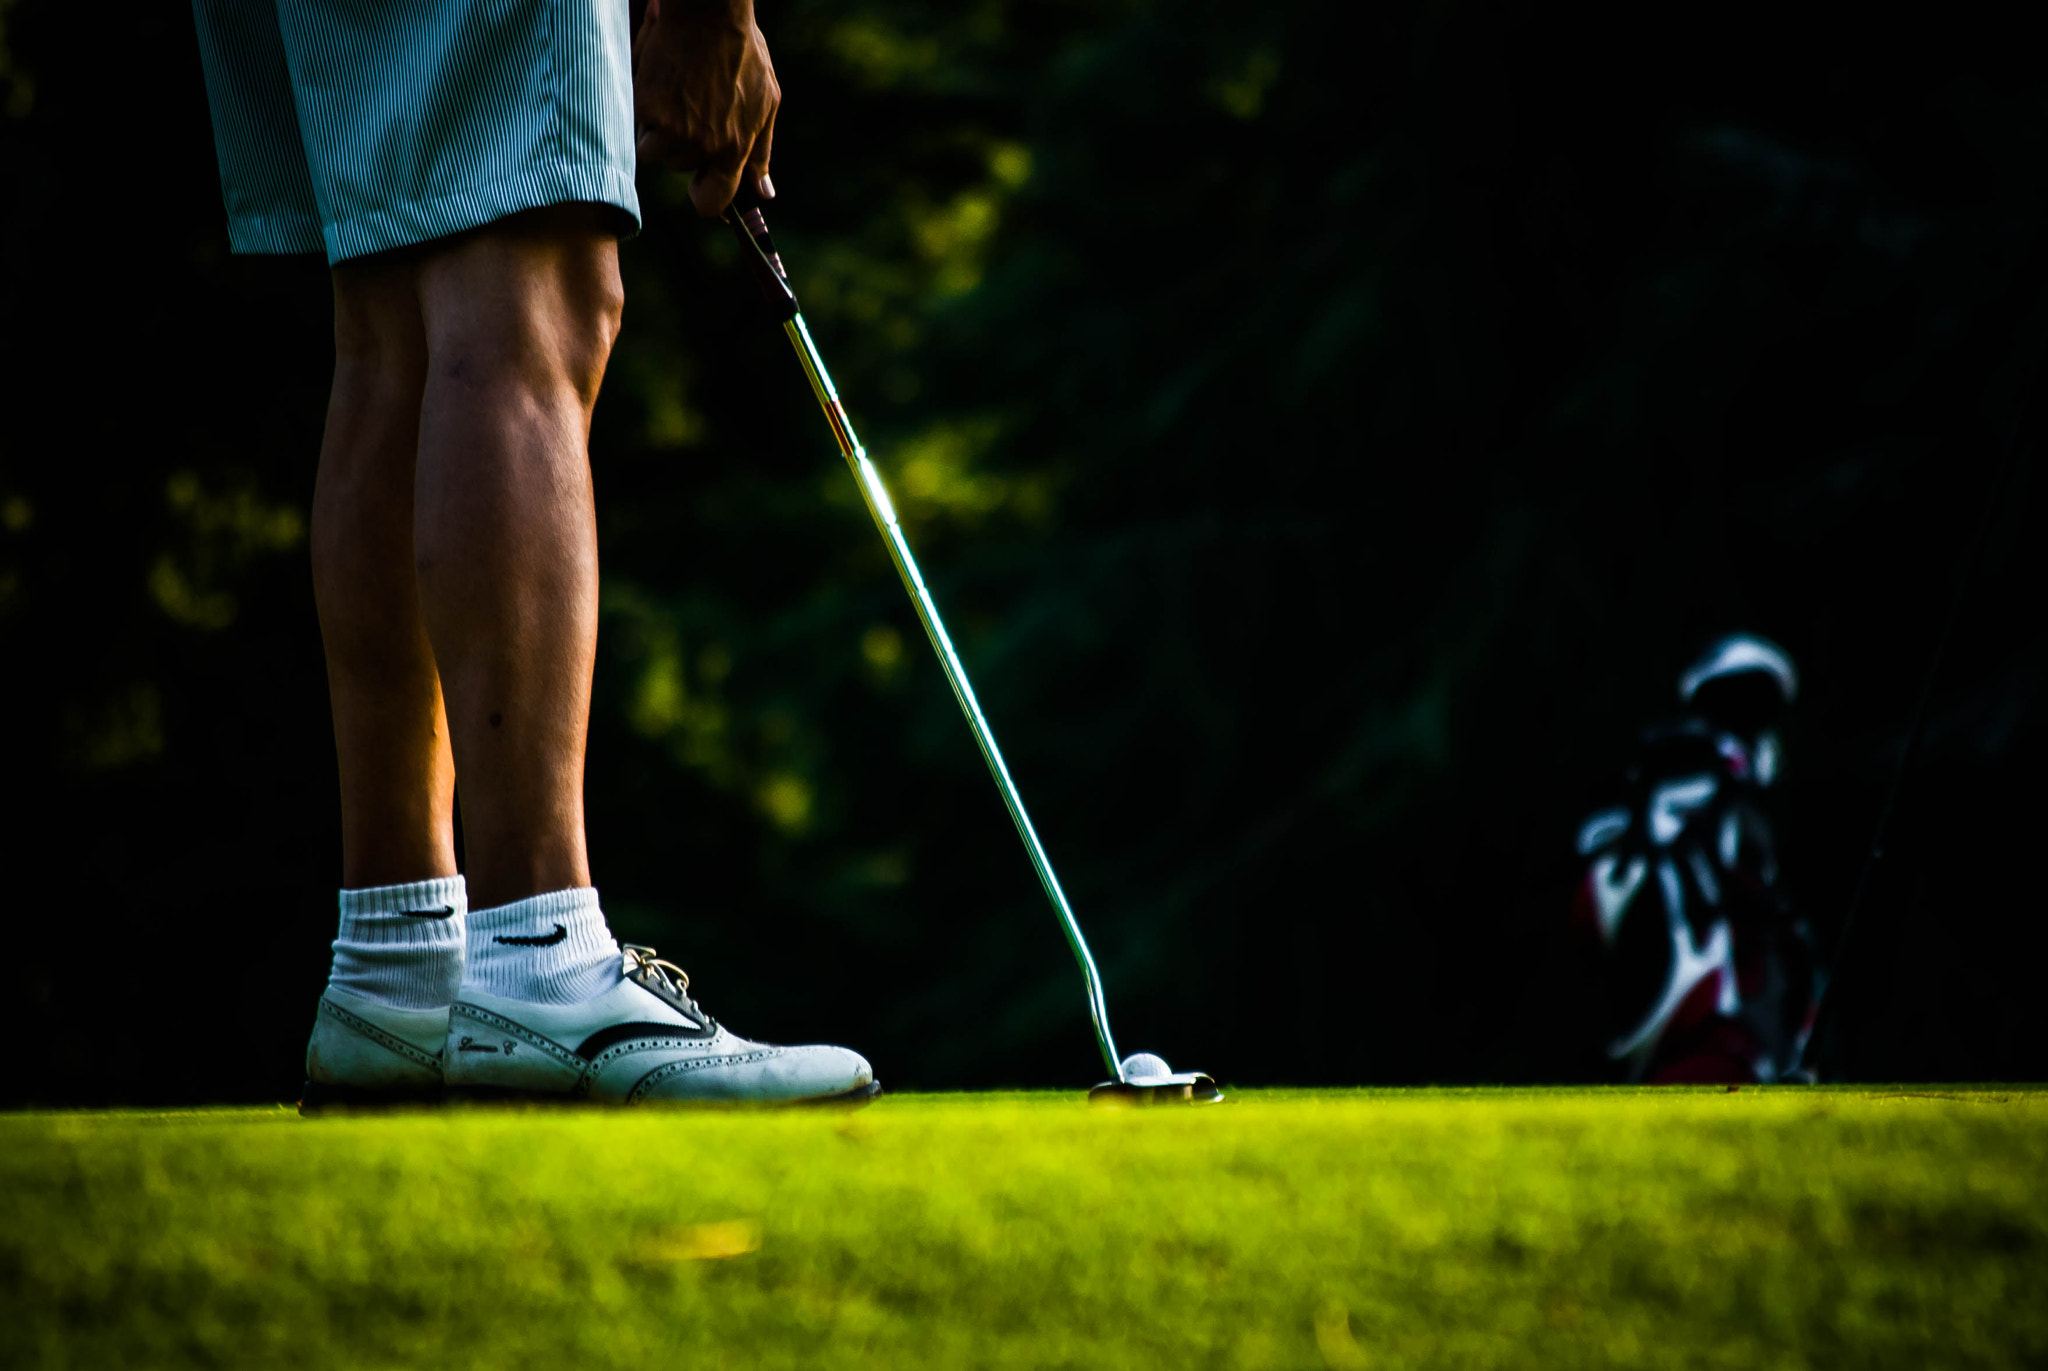 Photograph Golf Club - in the hole by Giusy Ciampetti on 500px